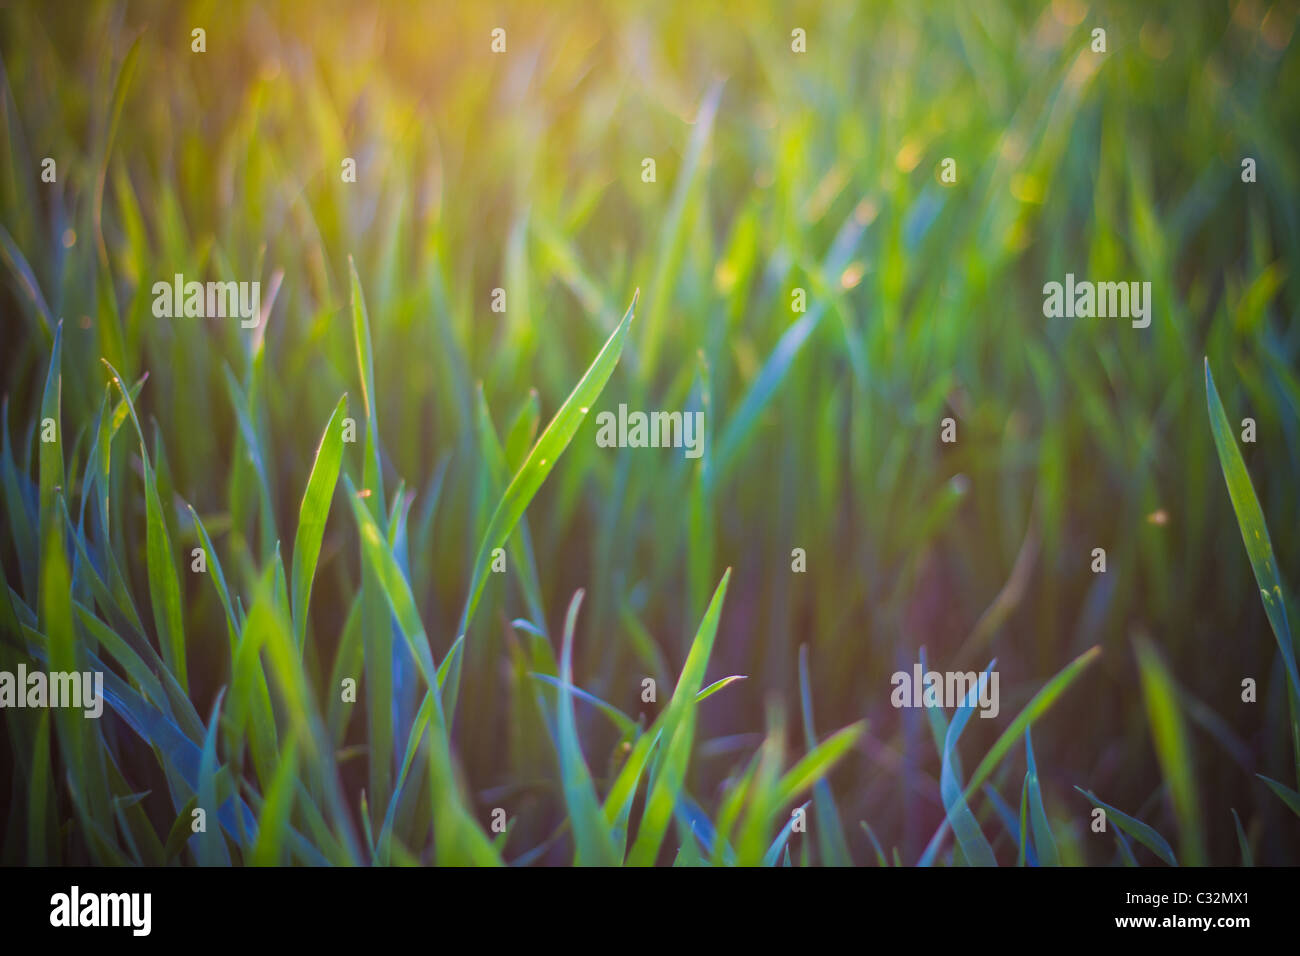 Hazy field in sunshine, UK. Sprouting wheat grass. - Stock Image